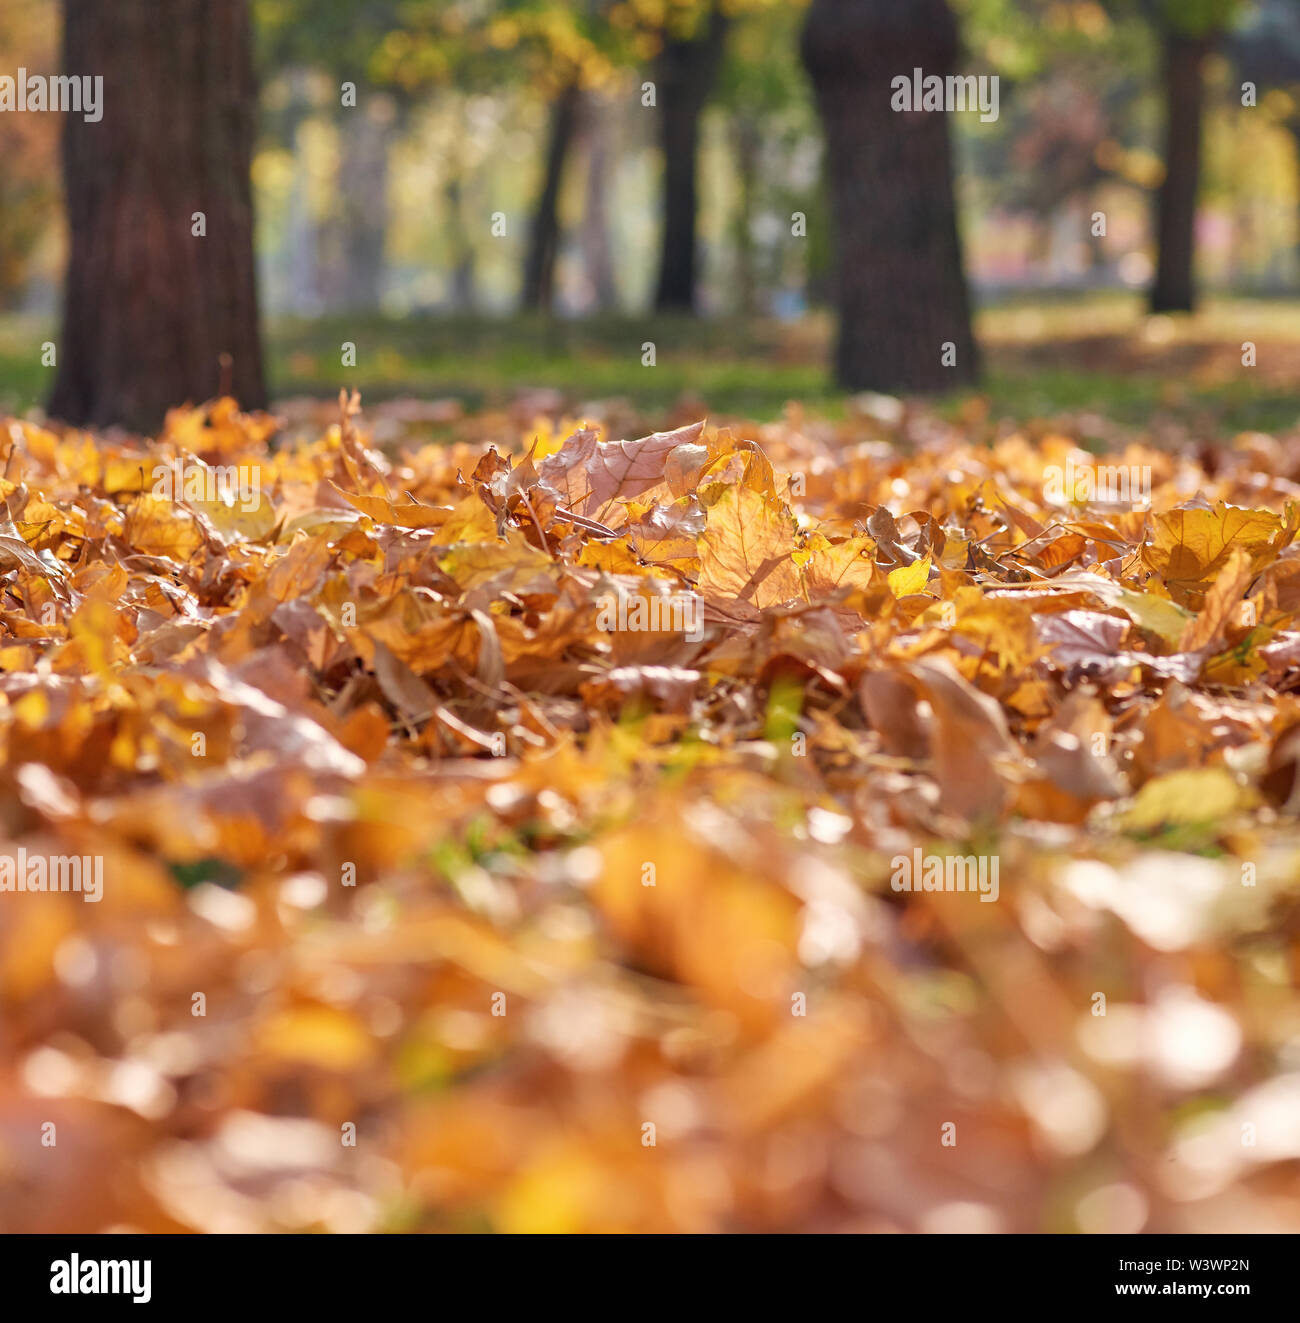 dry yellow maple leaves on the ground, selective focus, autumn day - Stock Image